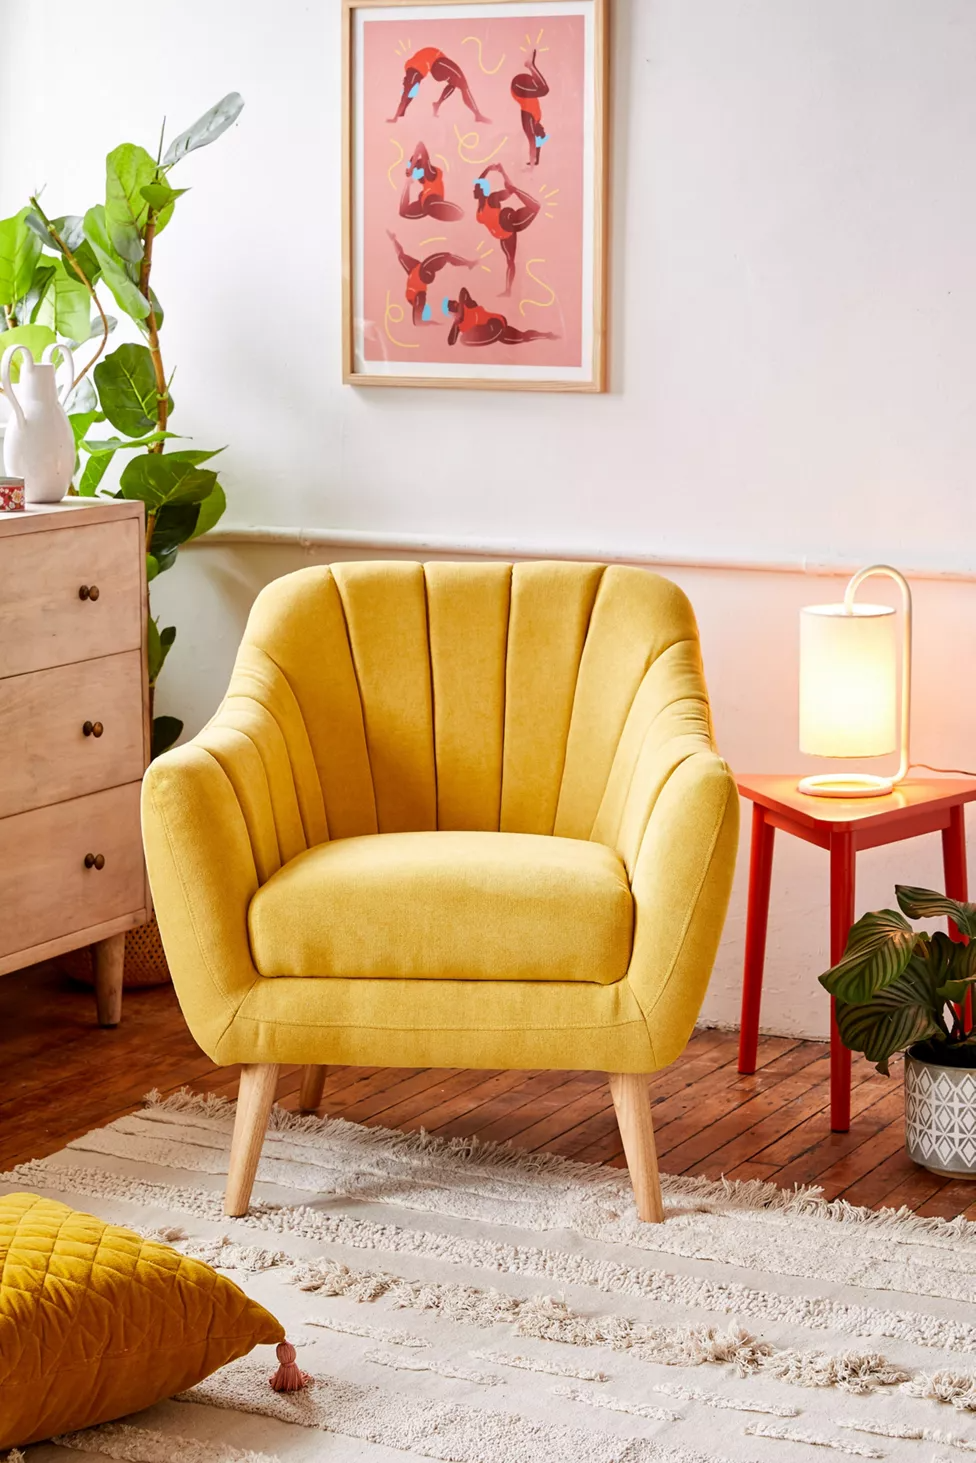 Selena Arm Chair Urban Outfitters In 2020 Home Decor Bedroom Home Decor Living Room Chairs